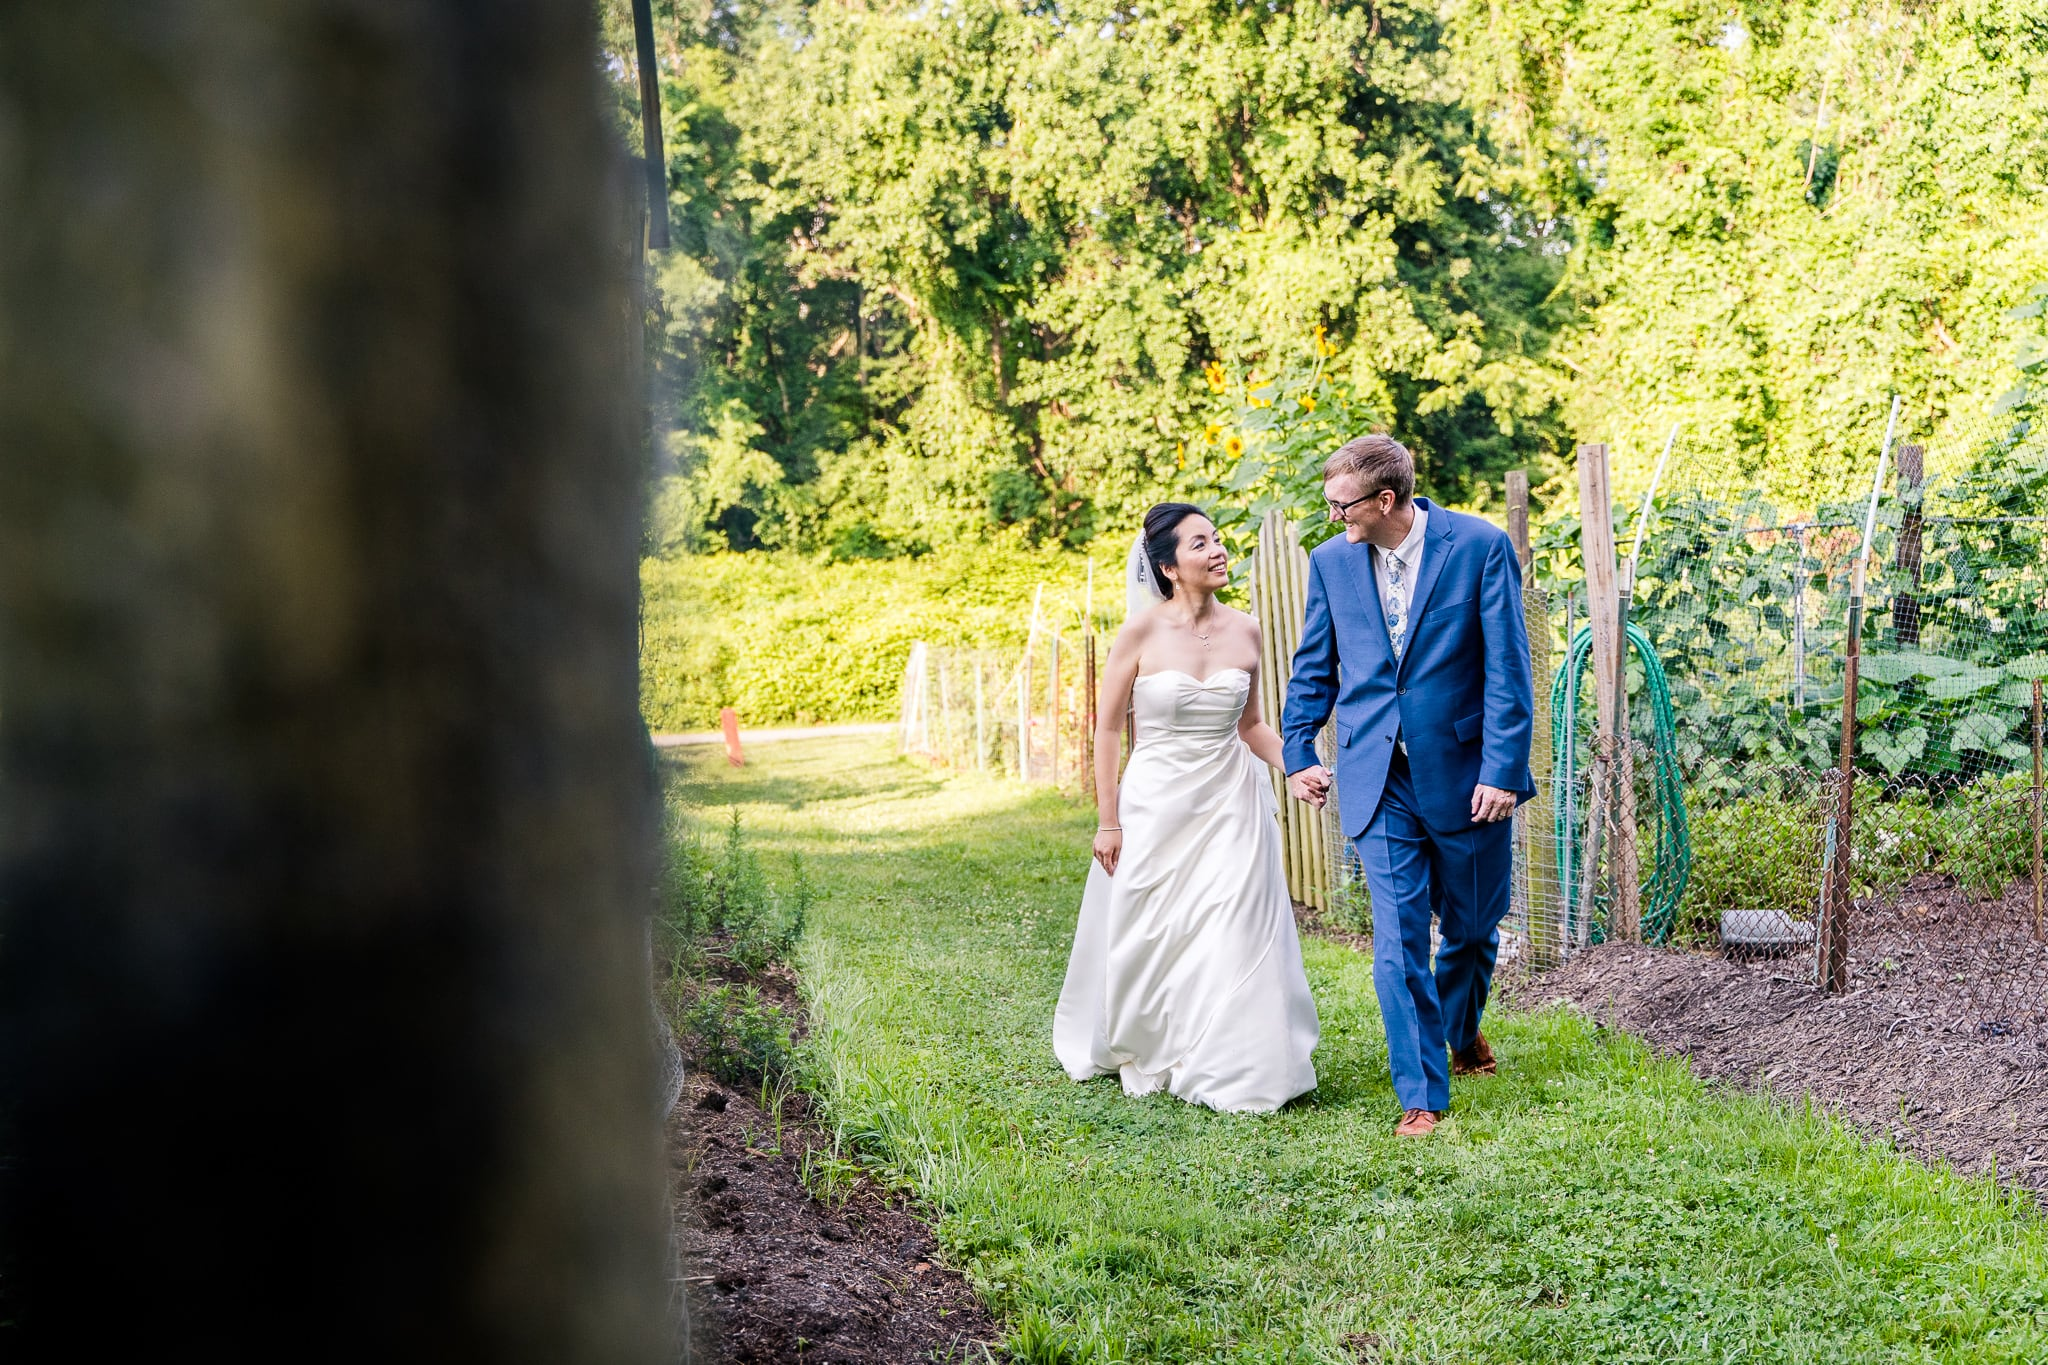 A Taiwanese bride walks with her groom in the community gardens at Nottoway Park after their wedding in Vienna, Northern Virginia